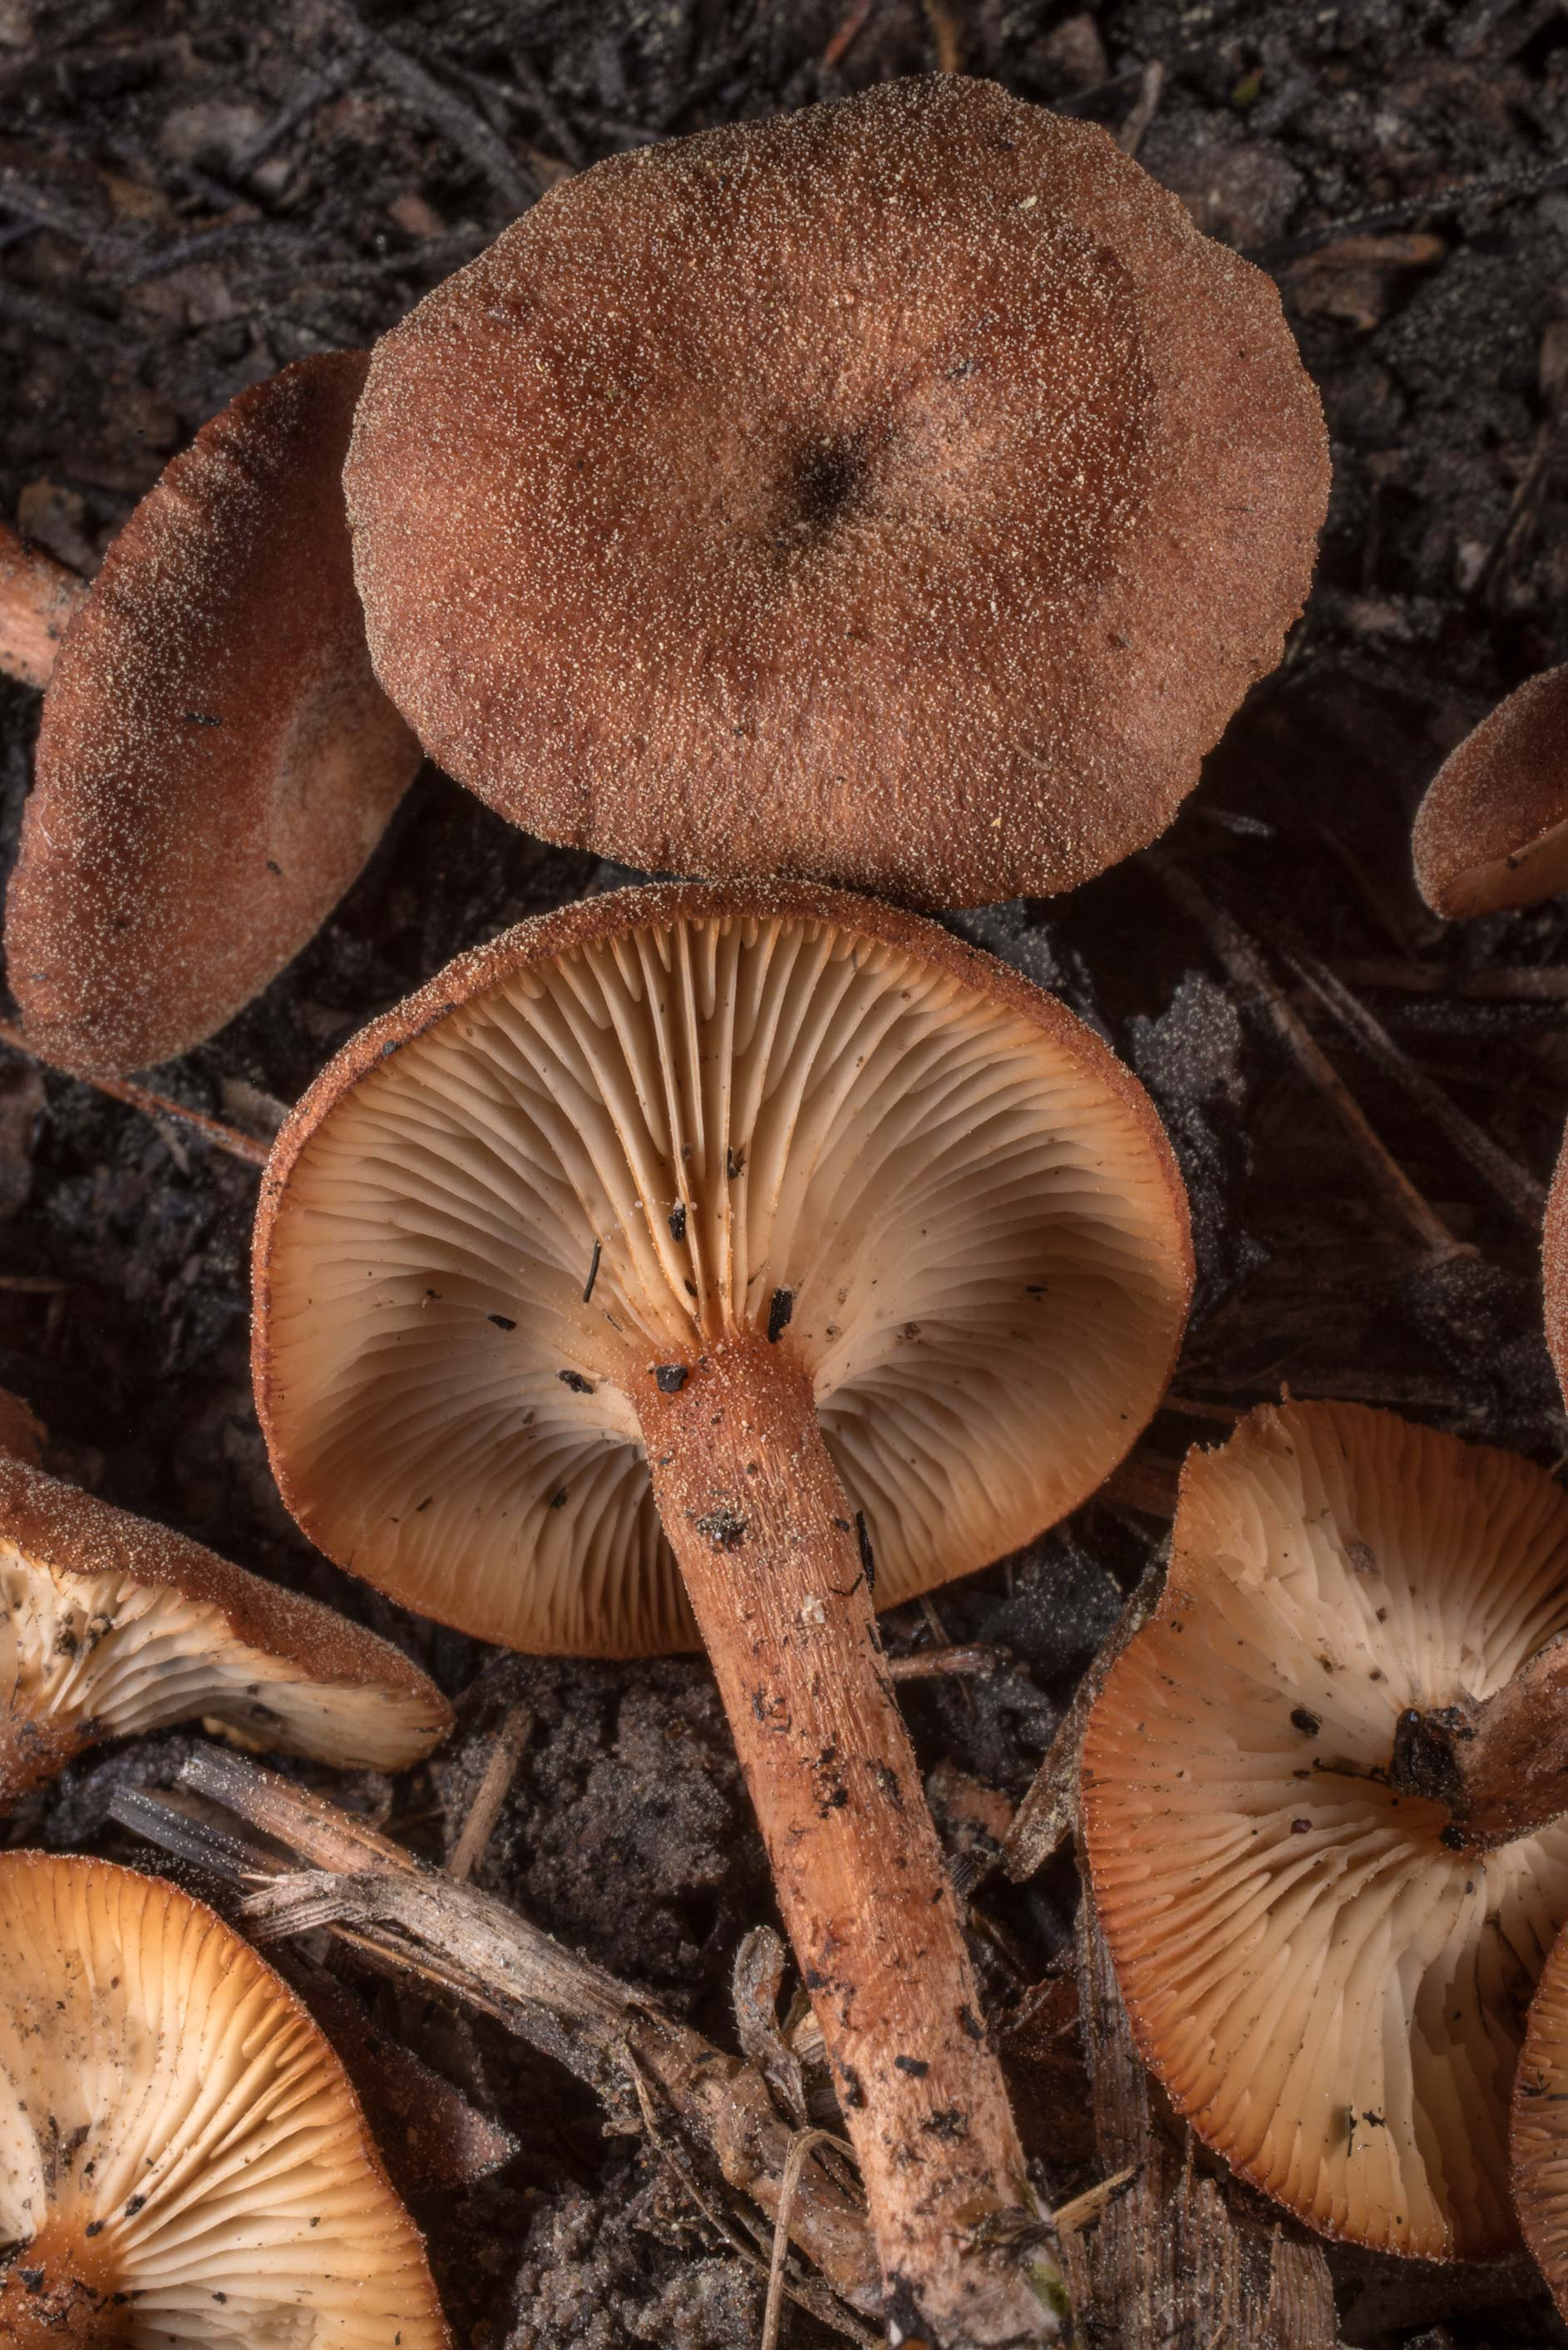 Close-up of brick-red Clitocybe mushrooms...in Sam Houston National Forest. Texas